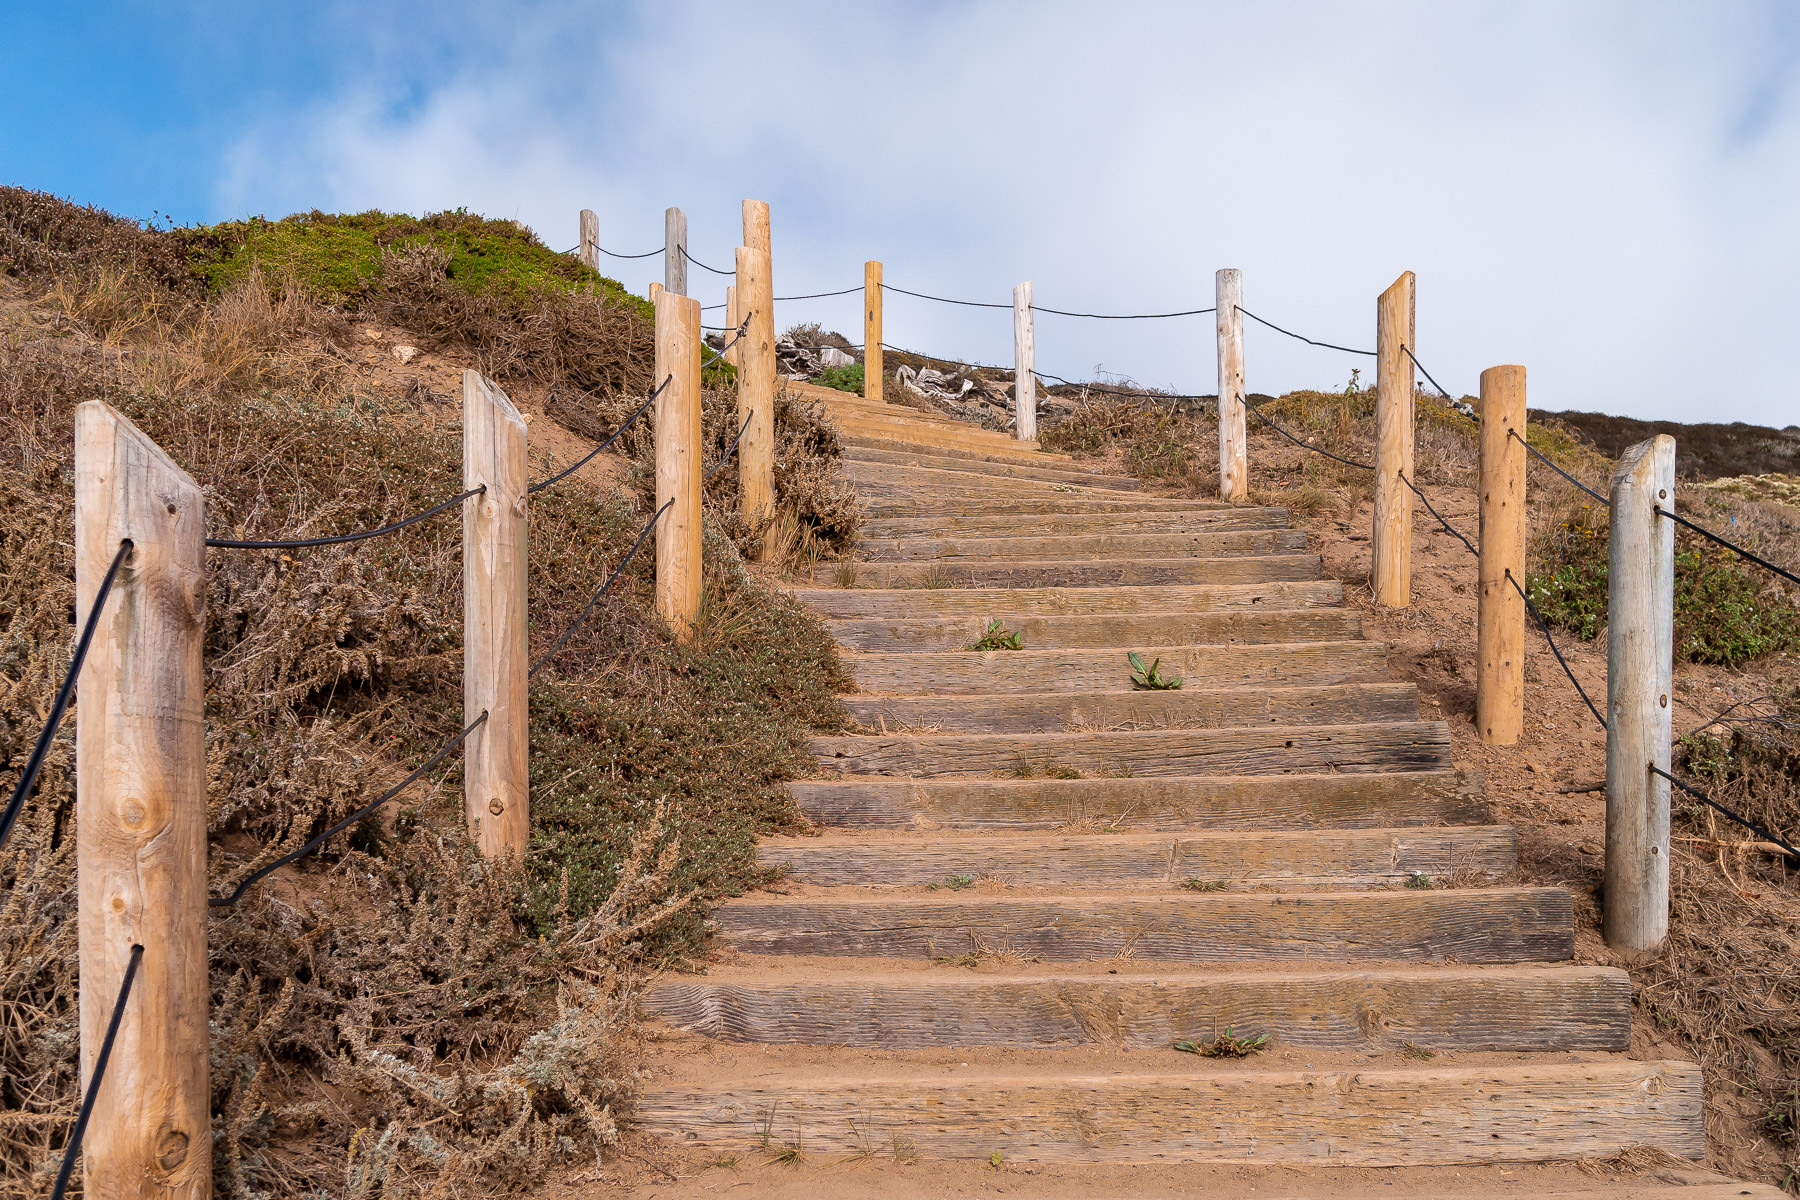 Stairs ascend a hill at Lands End near the Sutro Baths ruins in San Francisco.